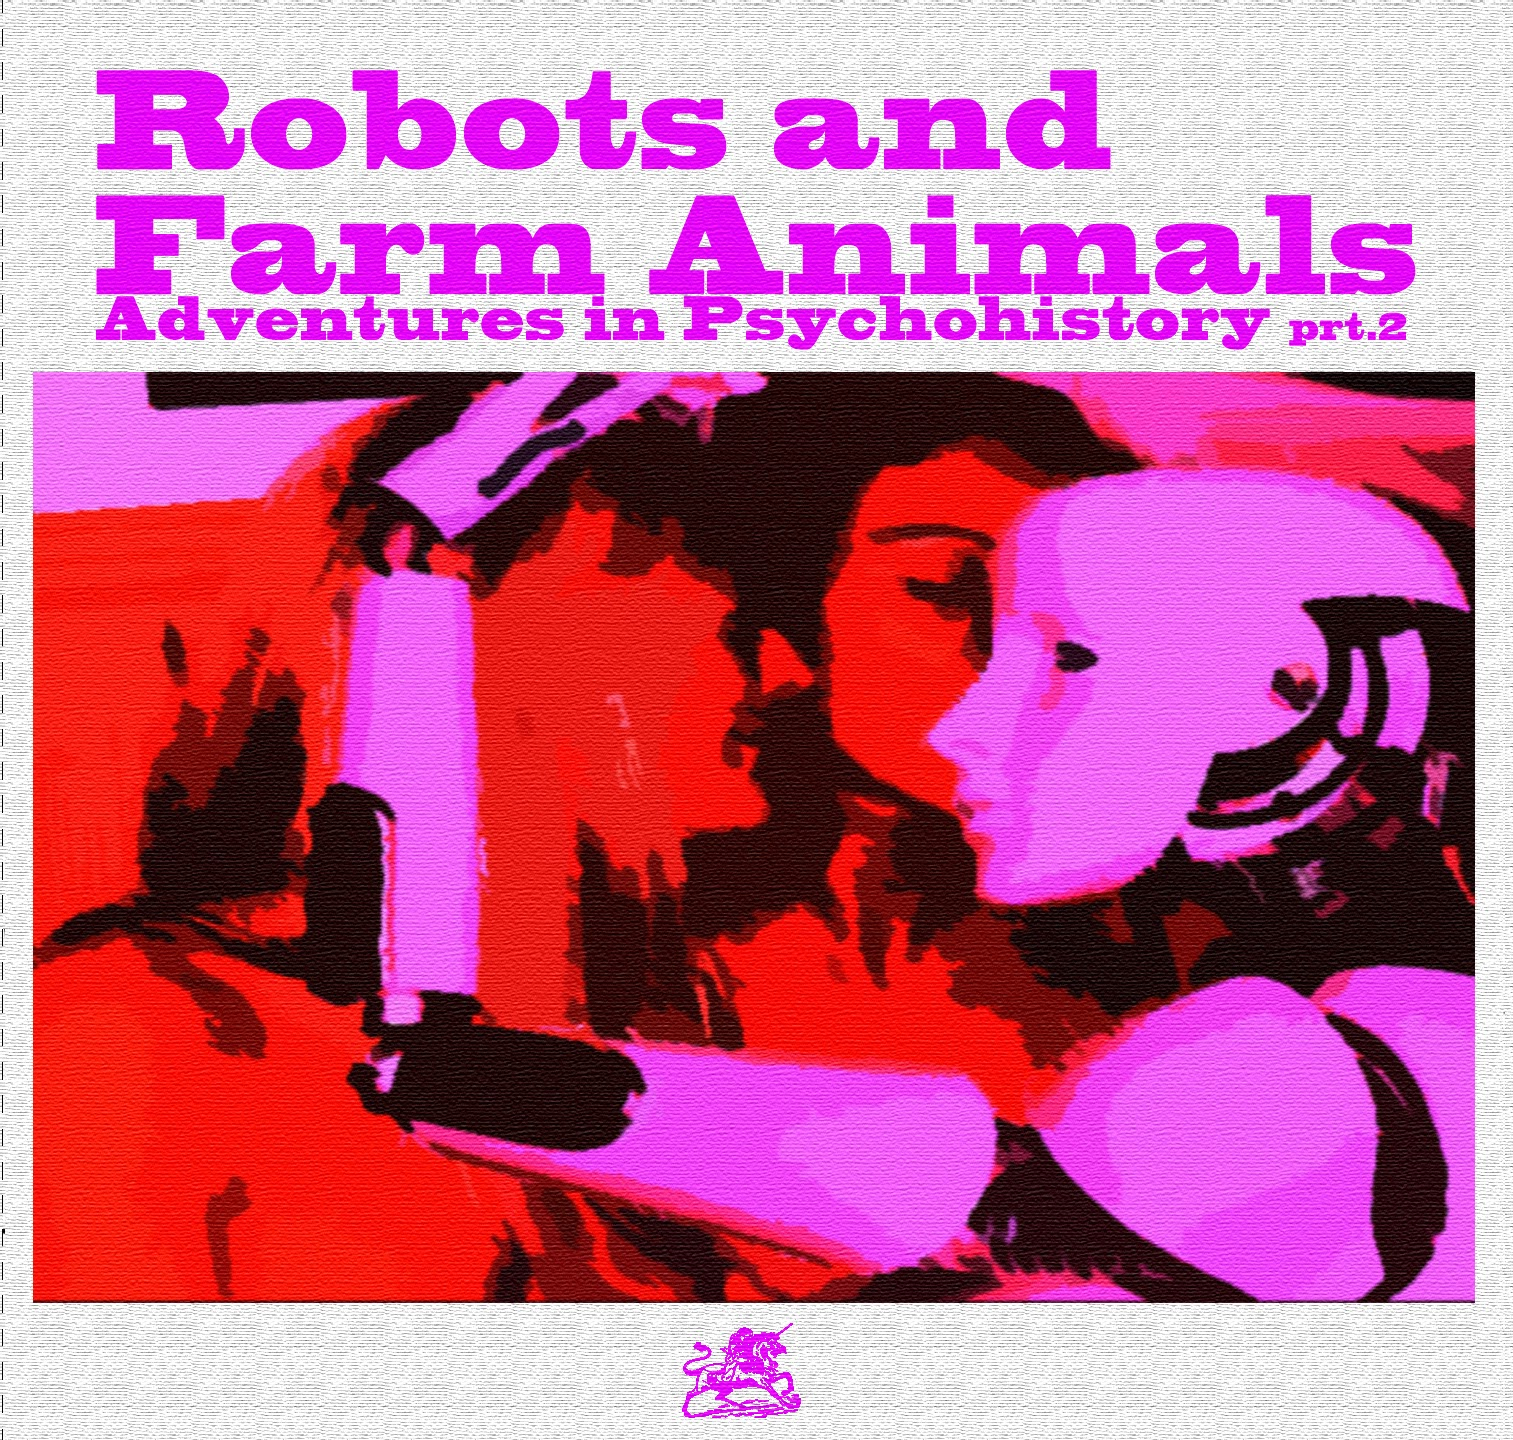 http://mastersofspaceopera.bandcamp.com/album/adventures-in-psychohistory-part-2-robots-and-farm-animals